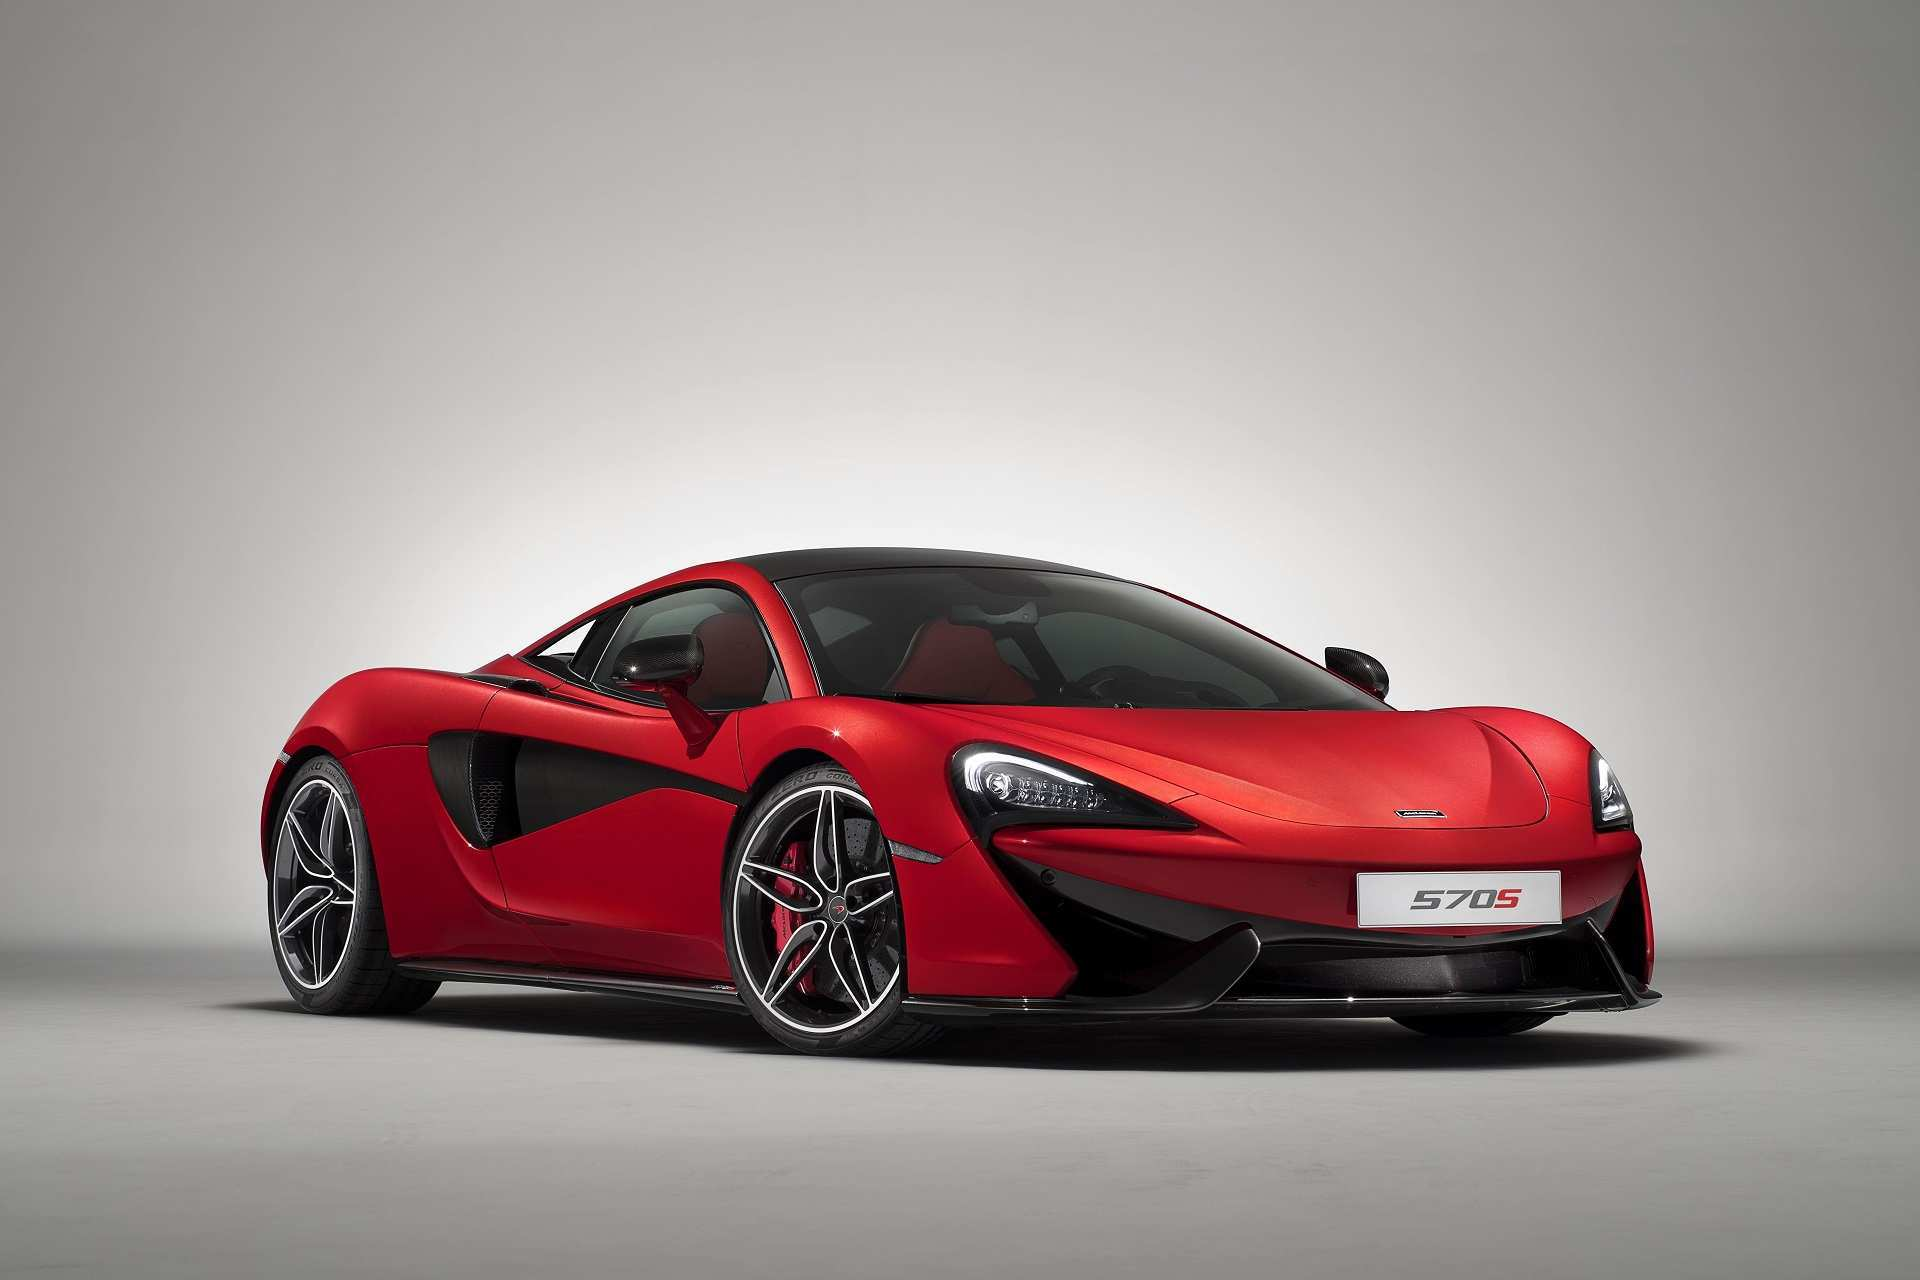 63 The 2020 McLaren 570S Coupe Specs And Review